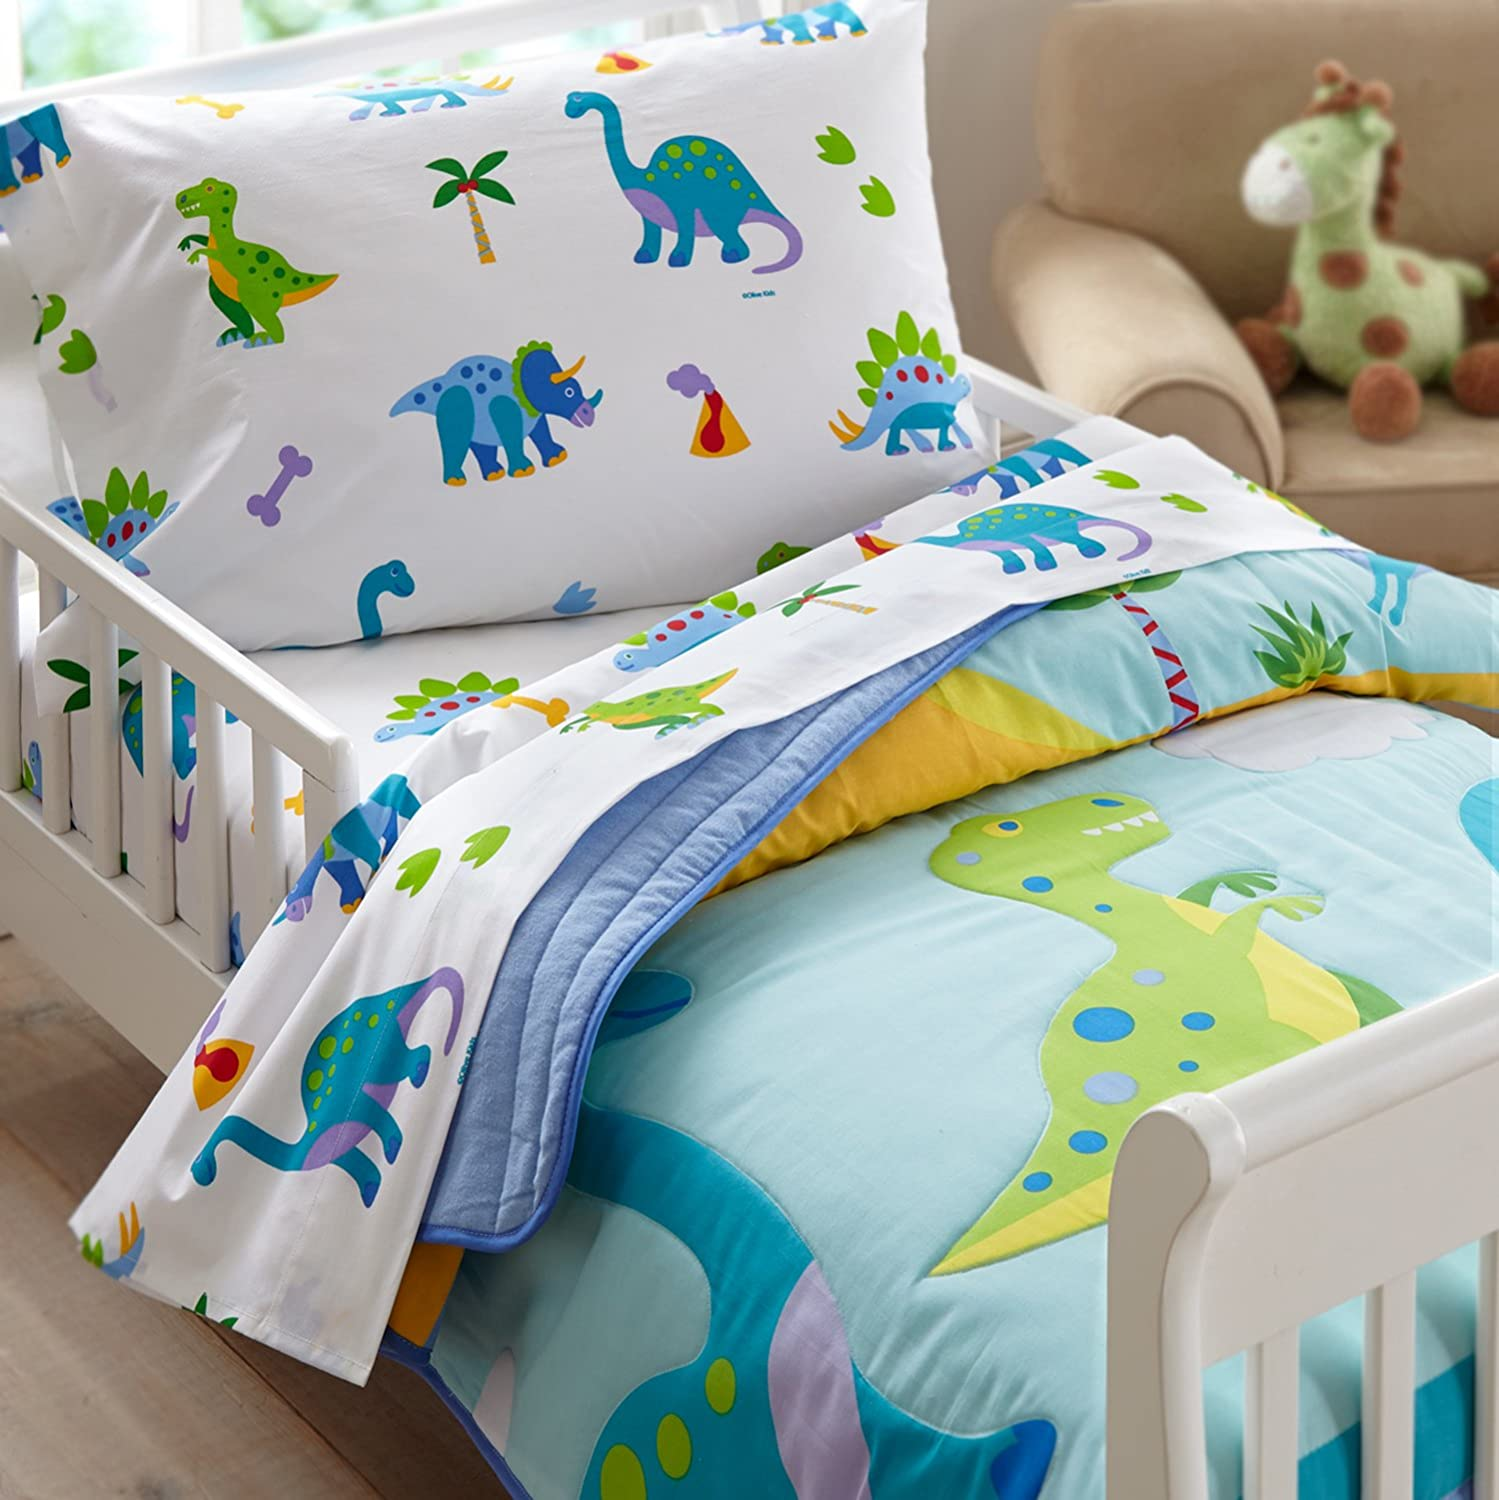 quilt is junior dinosaurs new image duvet set blue cover bed itm loading cot toddler